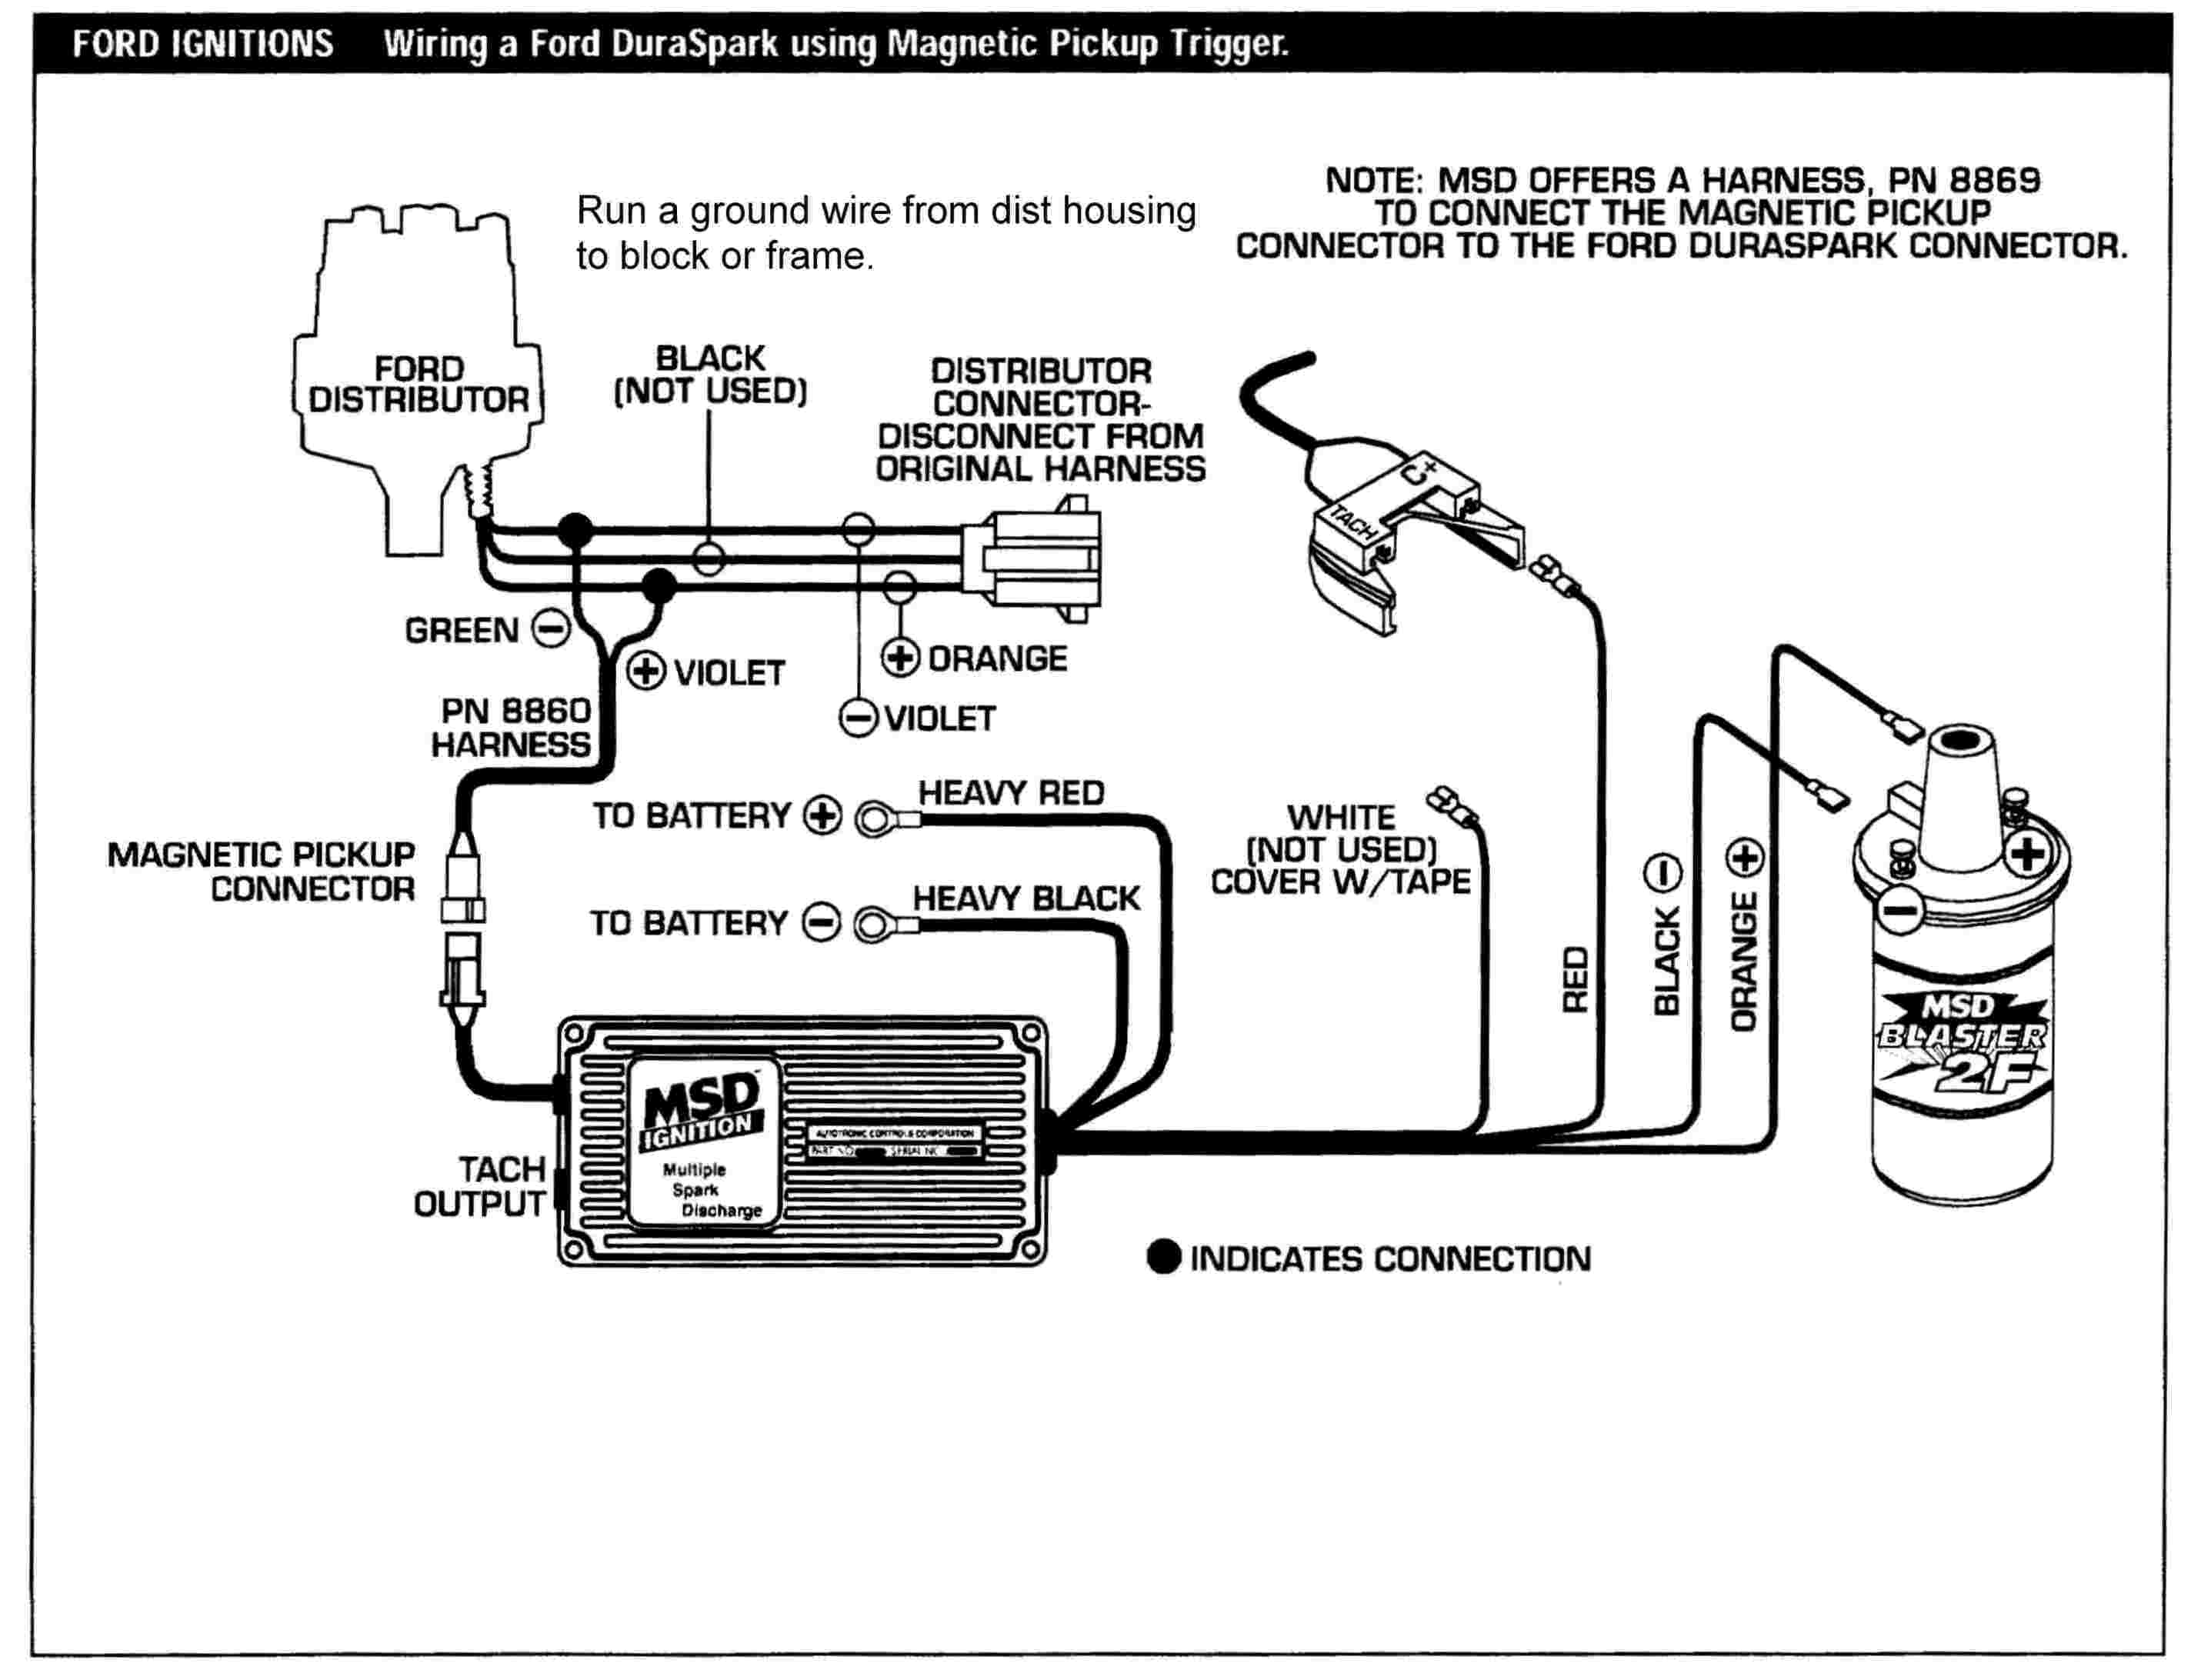 Msd Wiring Diagram Ford on mopar electronic ignition wiring diagram